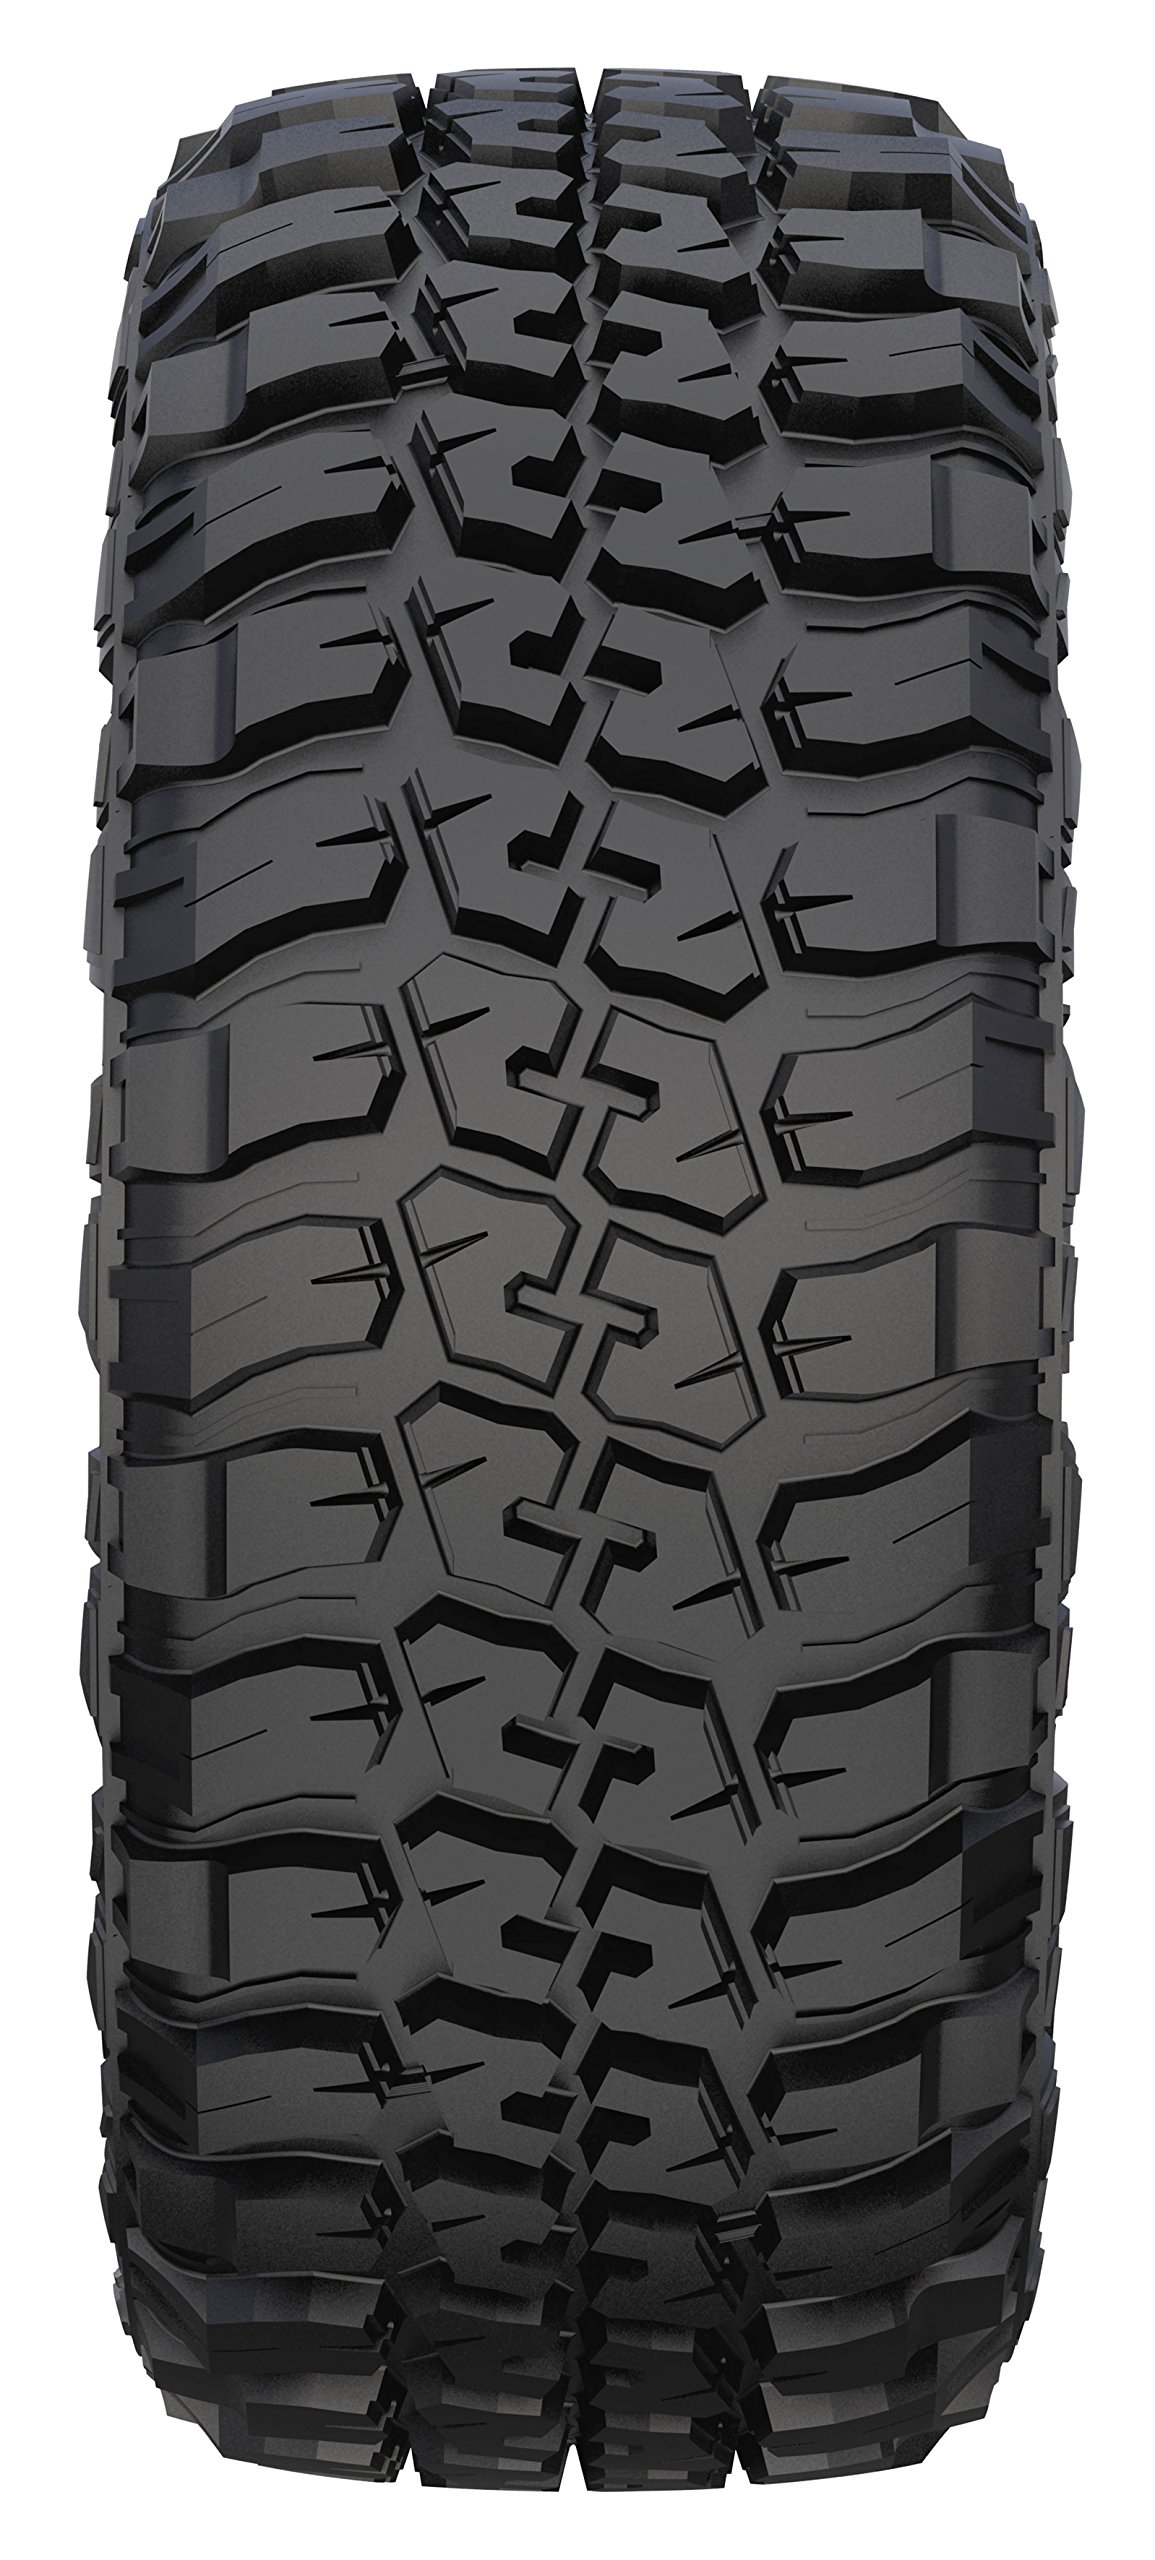 Federal Couragia M/T Mud-Terrain Radial Tire - 33x12.5R15 108Q by Federal (Image #2)